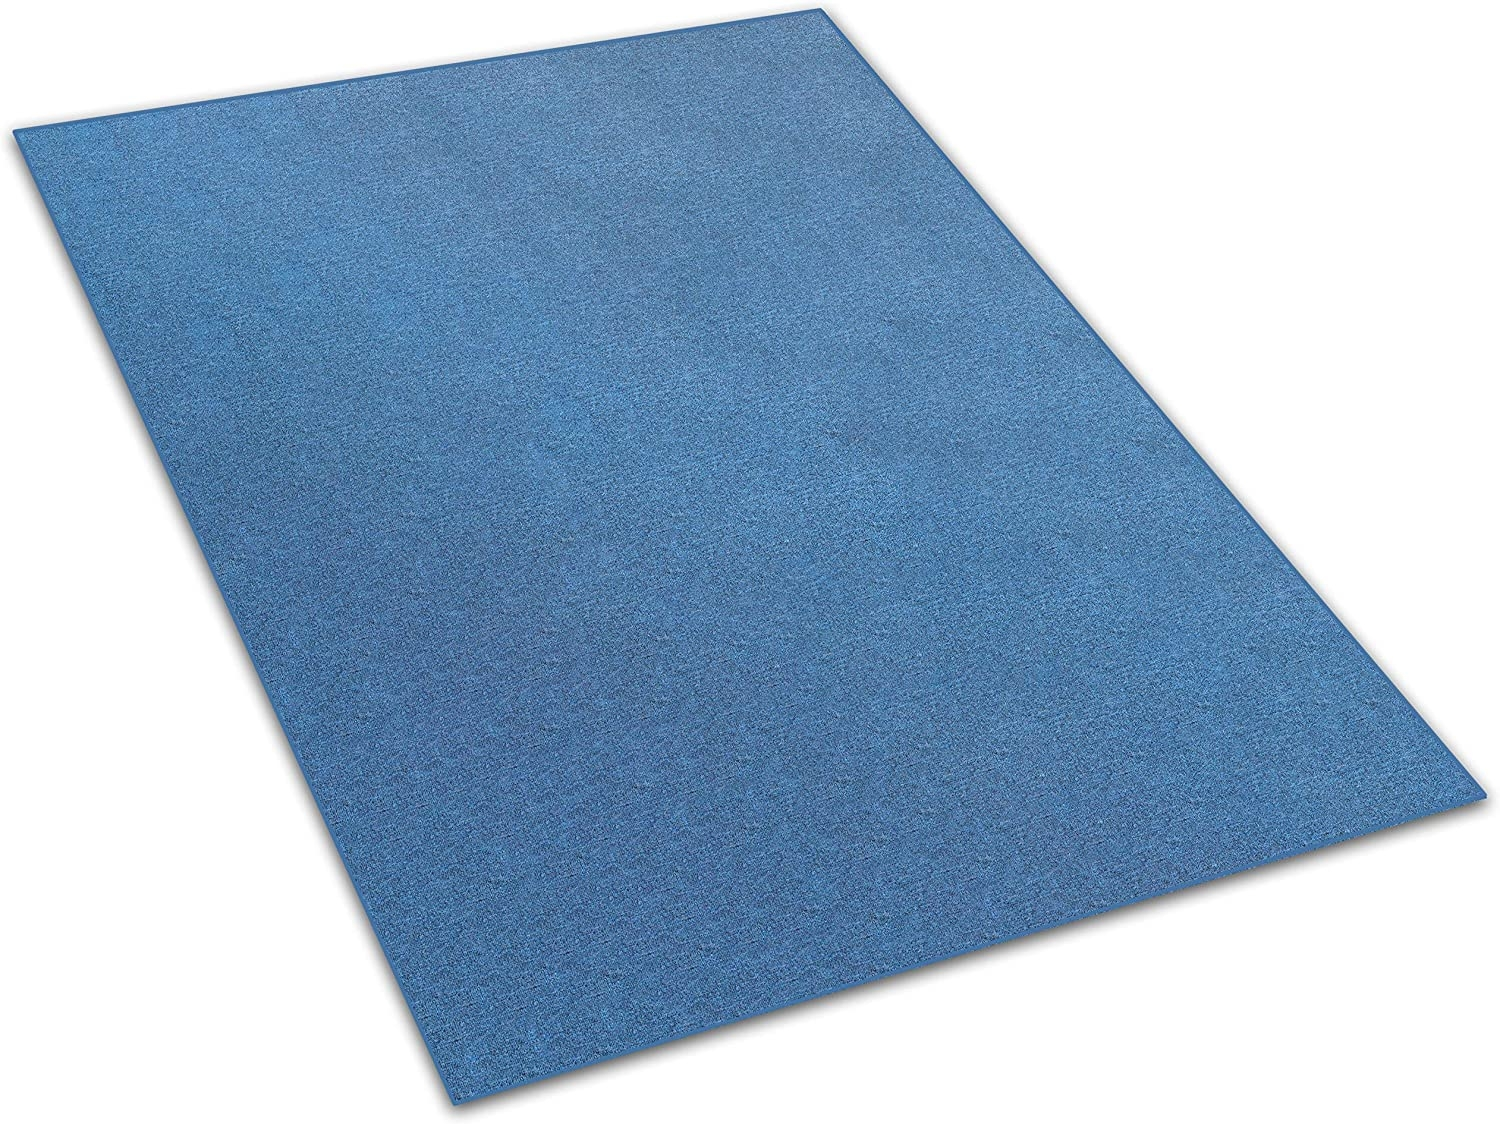 Amazon Com 2 5 X9 Runner Cobalt Indoor Outdoor Area Rug | Indoor Outdoor Carpet For Stairs | Slip Resistant Rubber Backing | Interior | Electric Blue | Stair Residential | Diamond Pattern